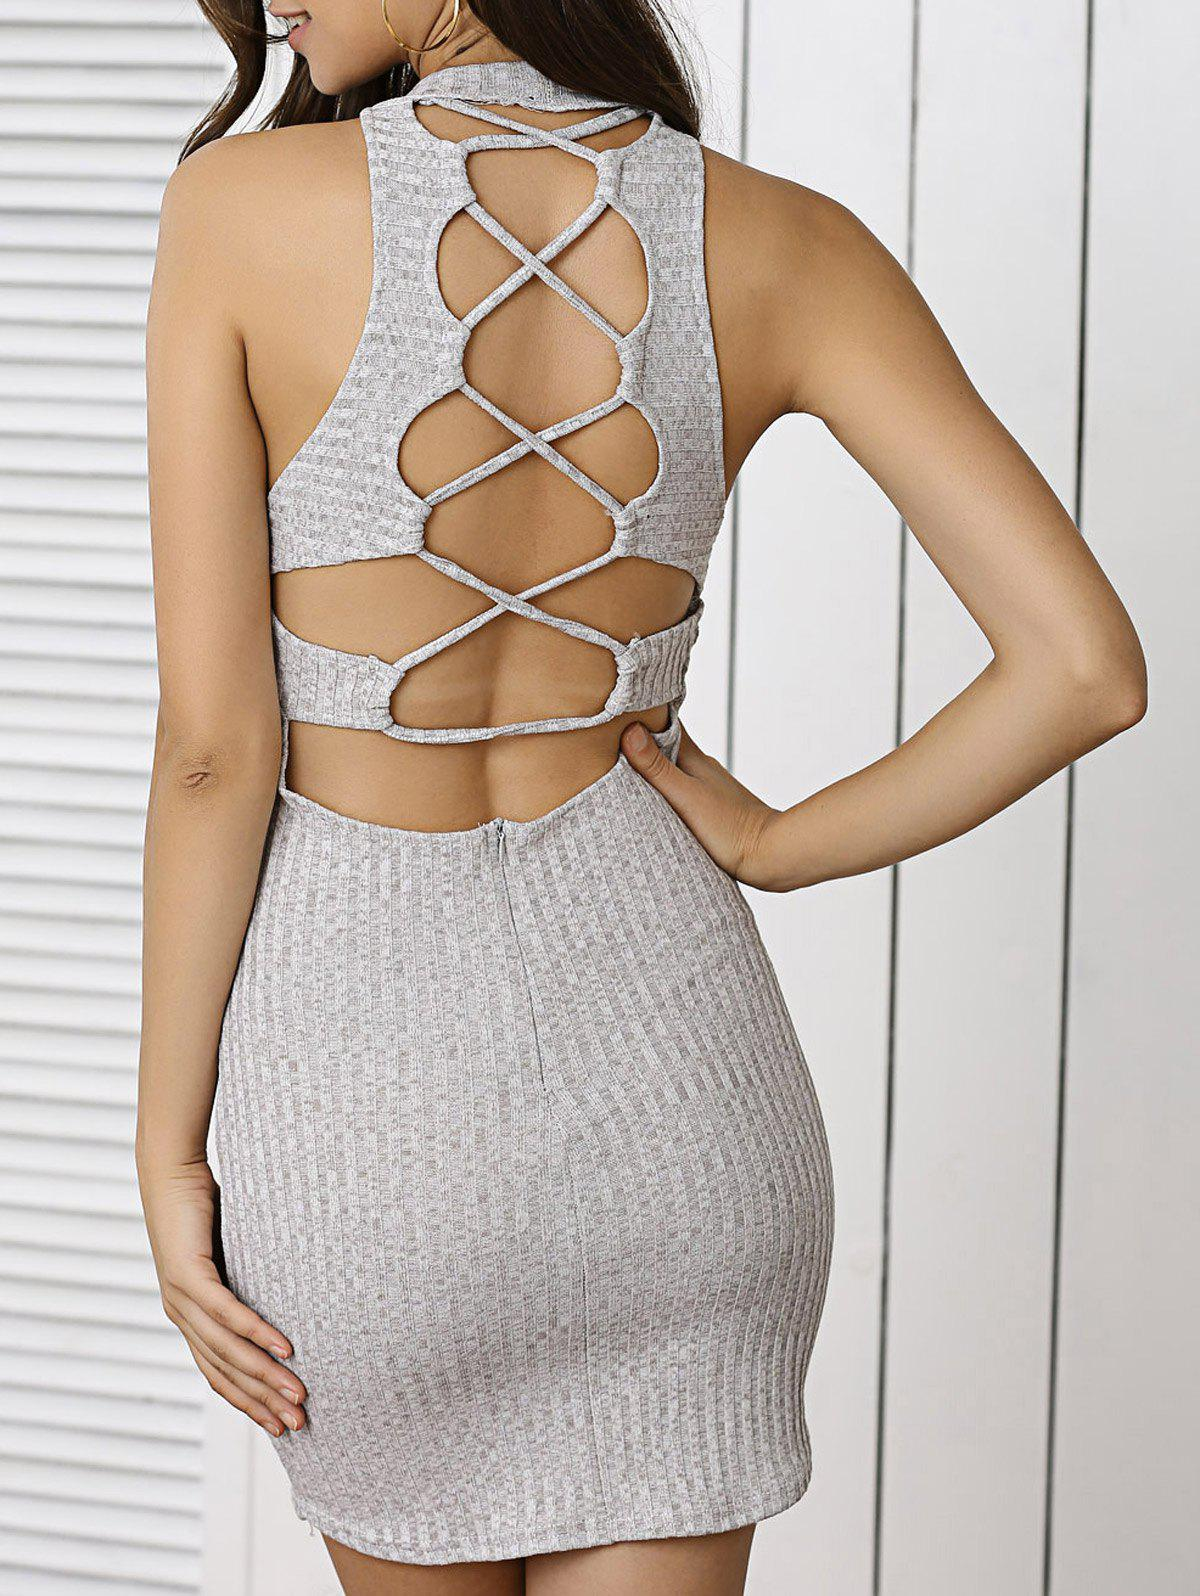 Lace Up Jumper Bodycon Club Dress - LIGHT GRAY S